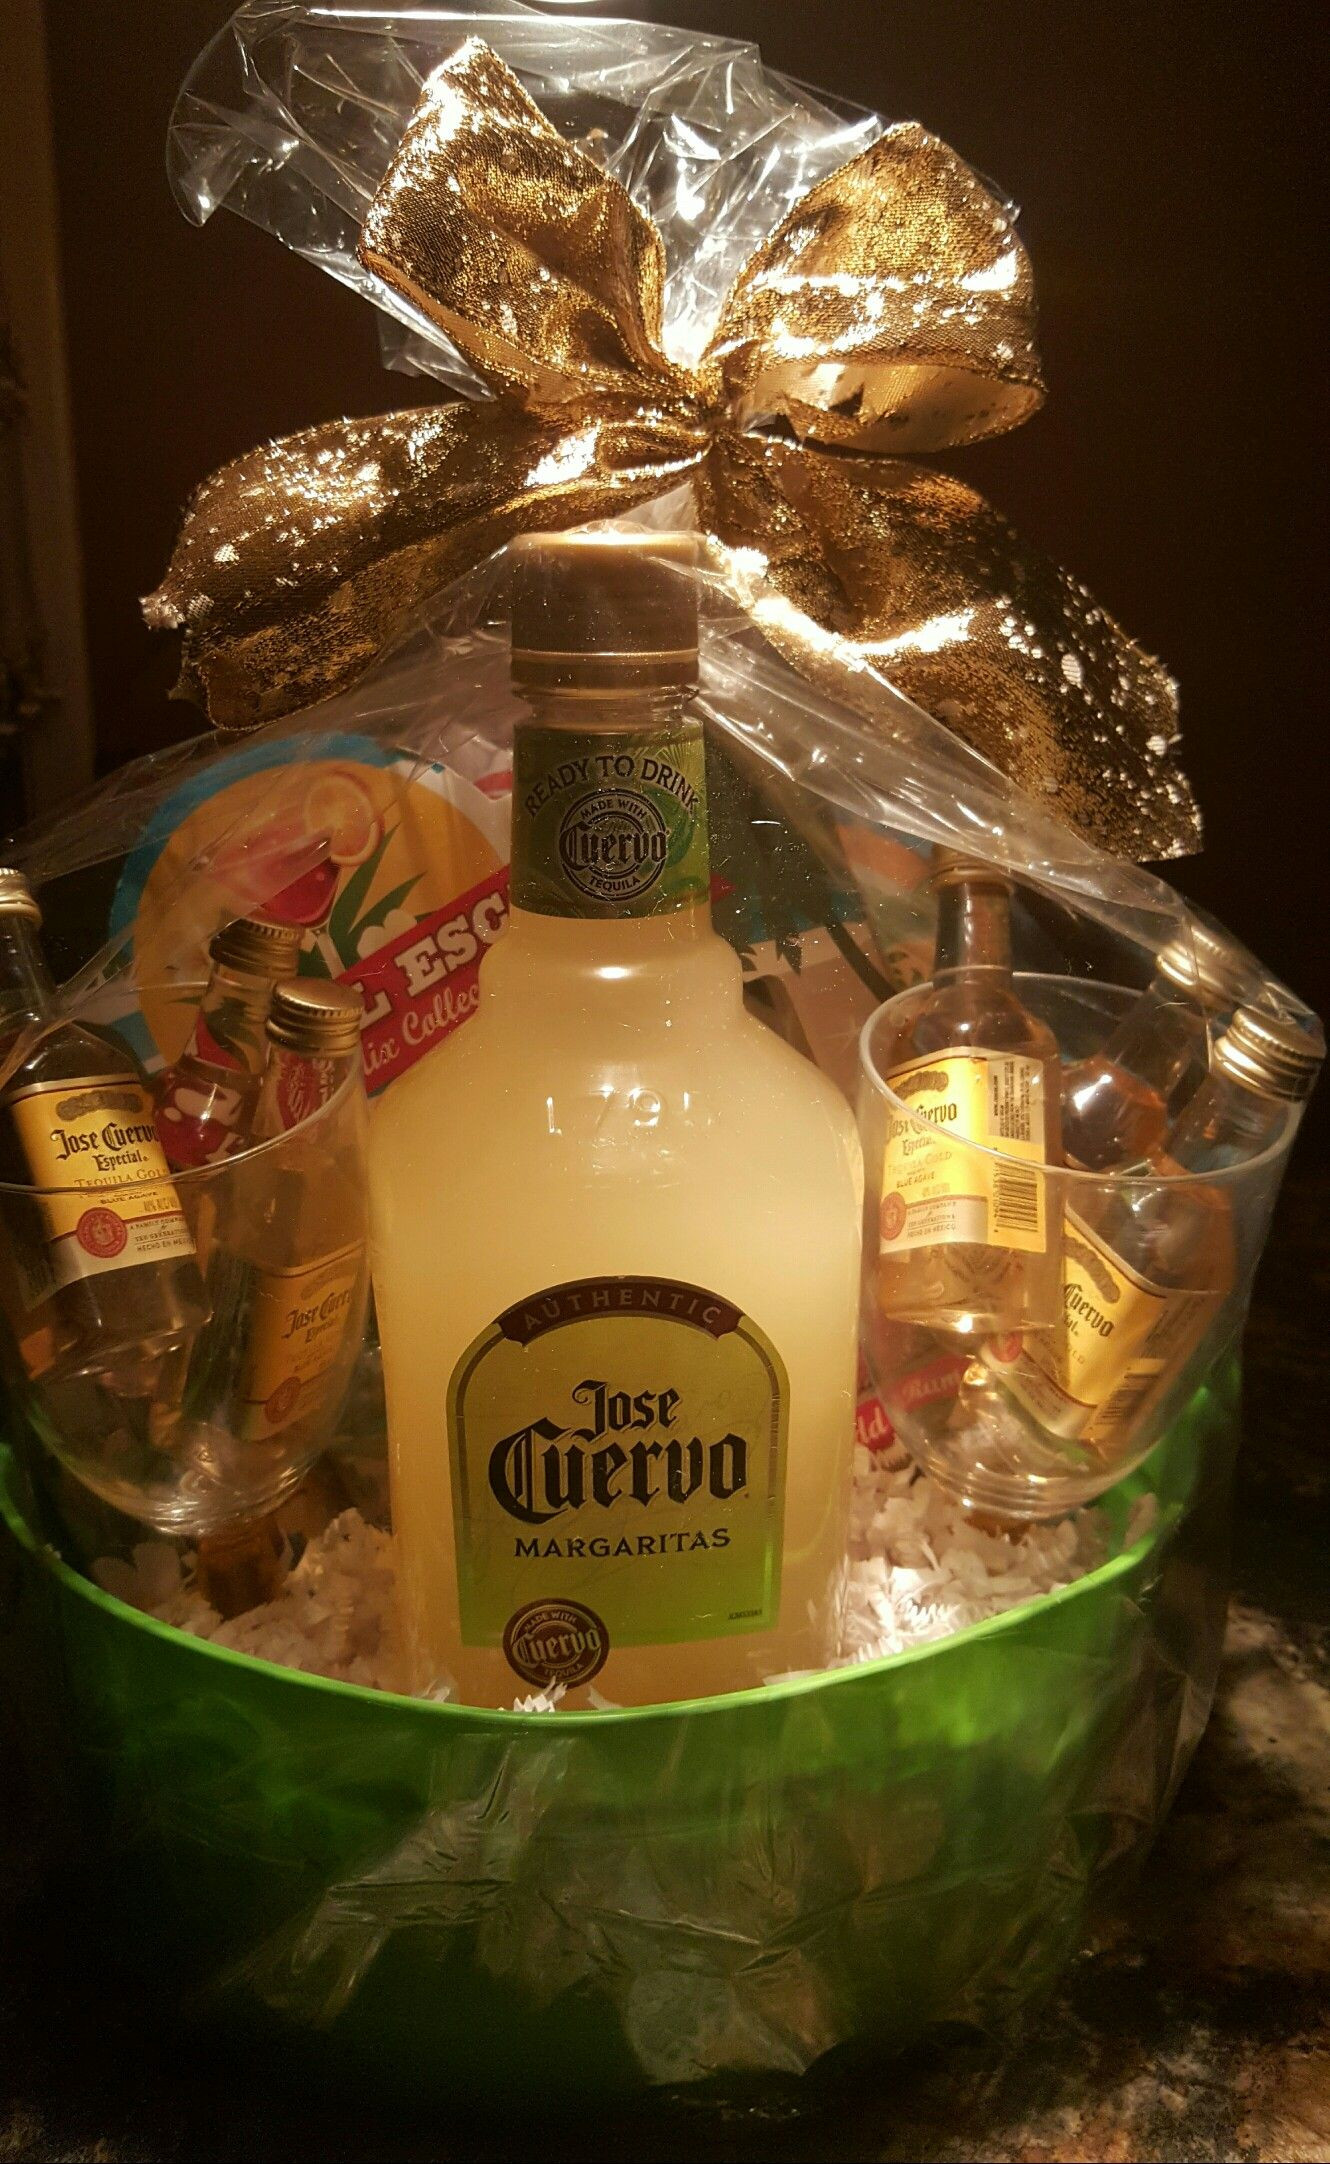 Best ideas about Tequila Gift Ideas . Save or Pin Liquor GIFT basket fundraiser ideas I used small Jose Now.